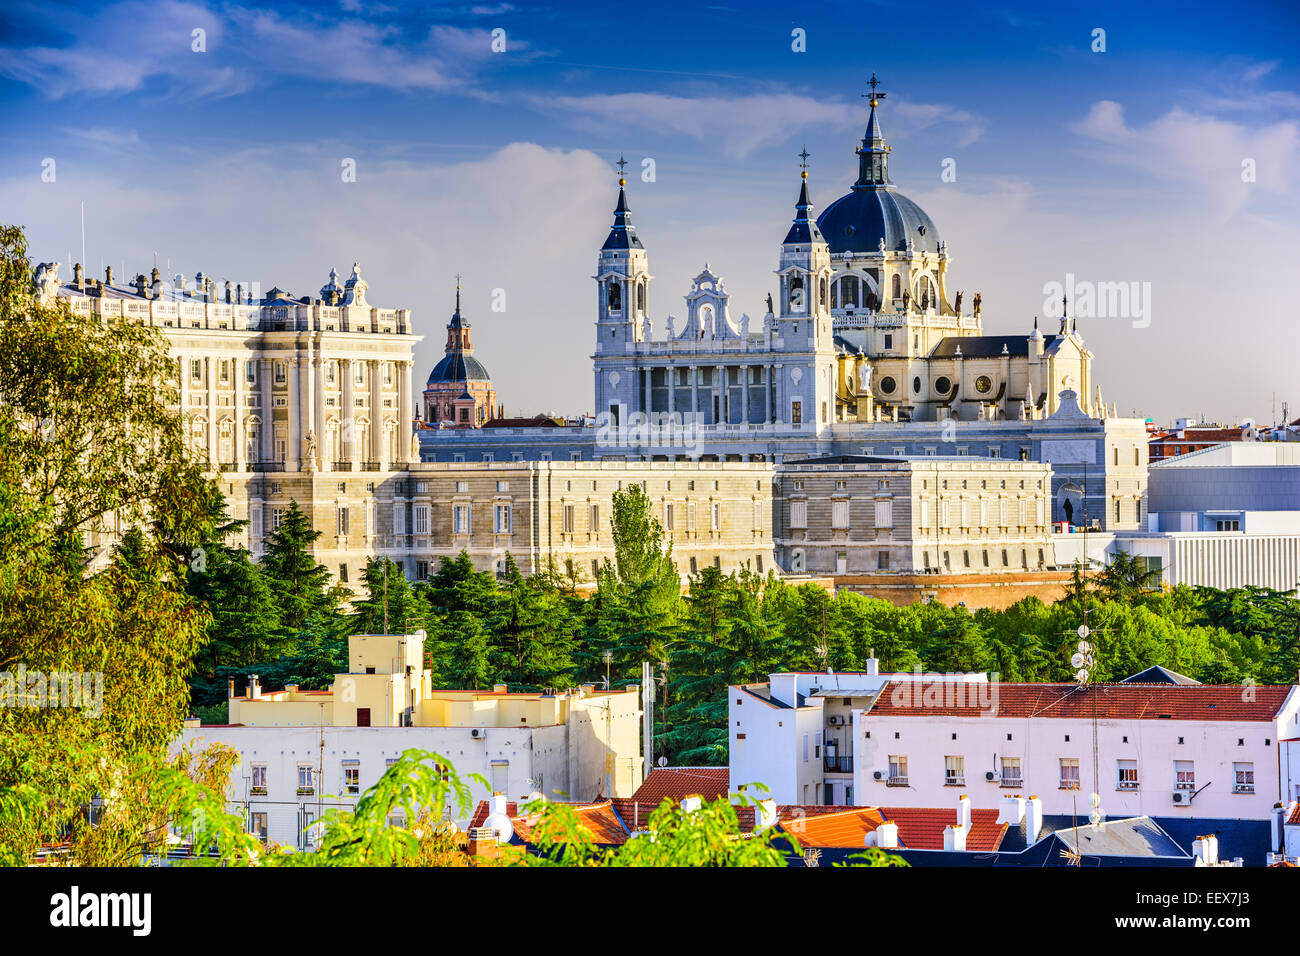 Madrid, Espagne skyline at Santa Maria la Real de la cathédrale Almudena et le Palais Royal. Photo Stock